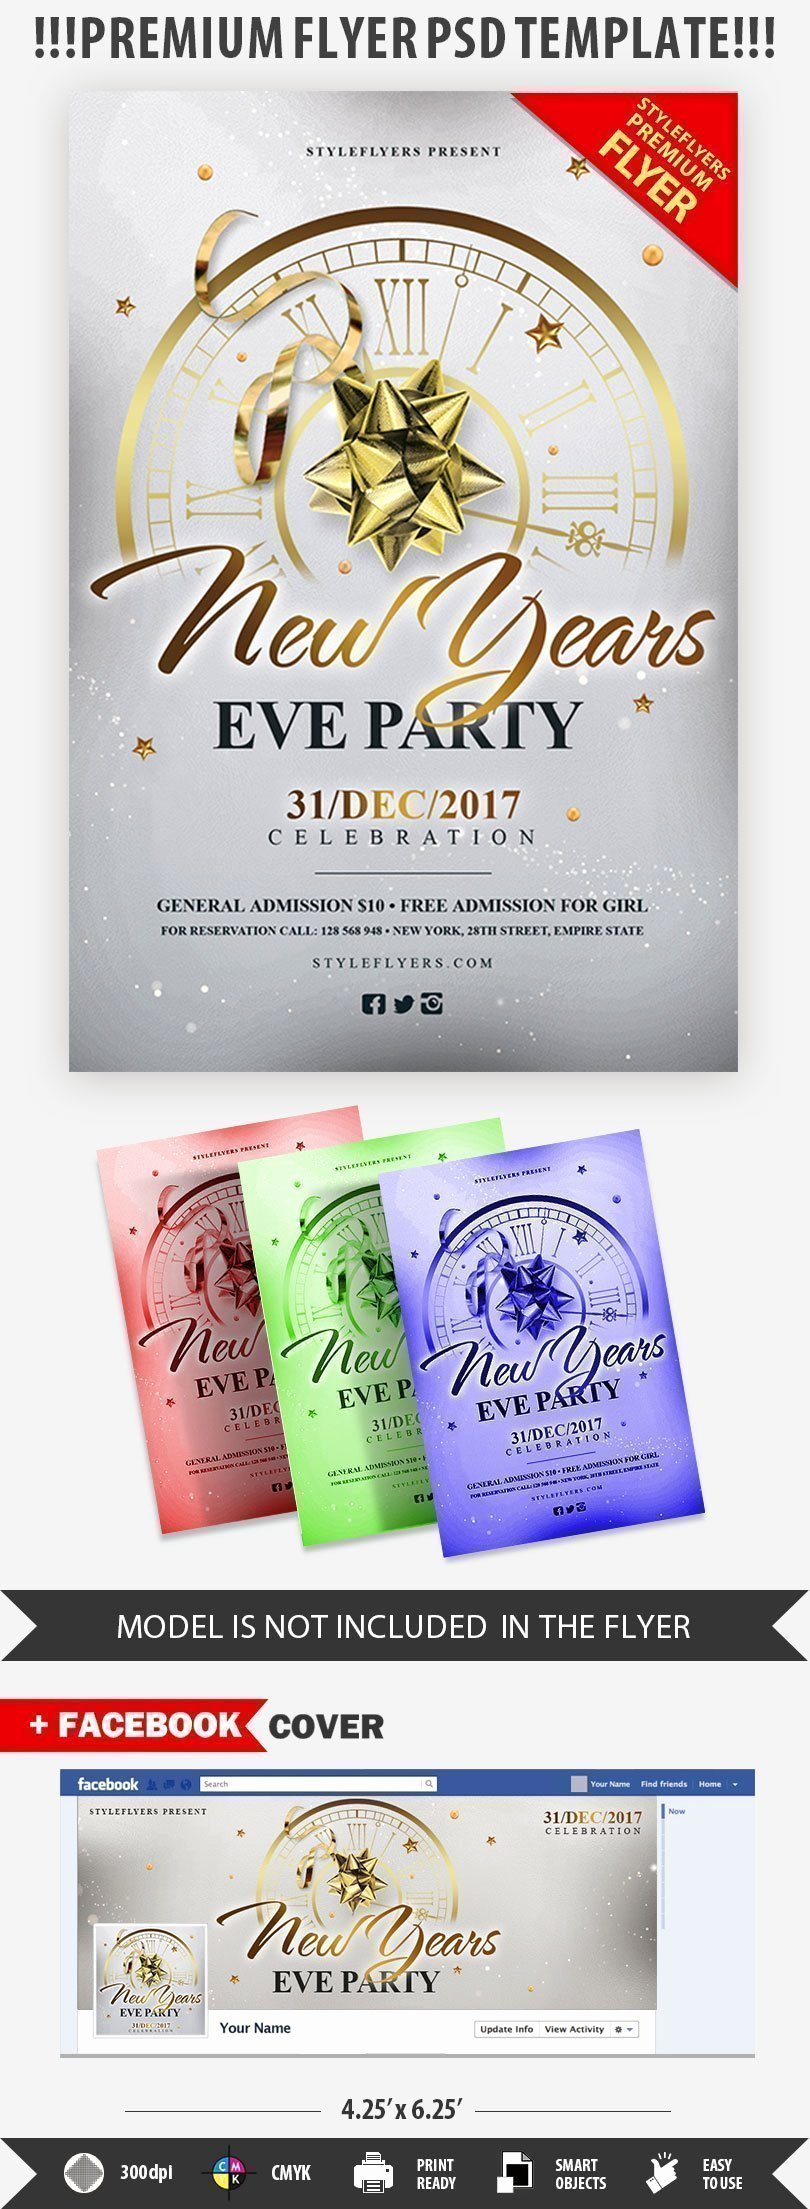 New Year Flyer Template Best Of New Year's Eve Party Psd Flyer Template Styleflyers